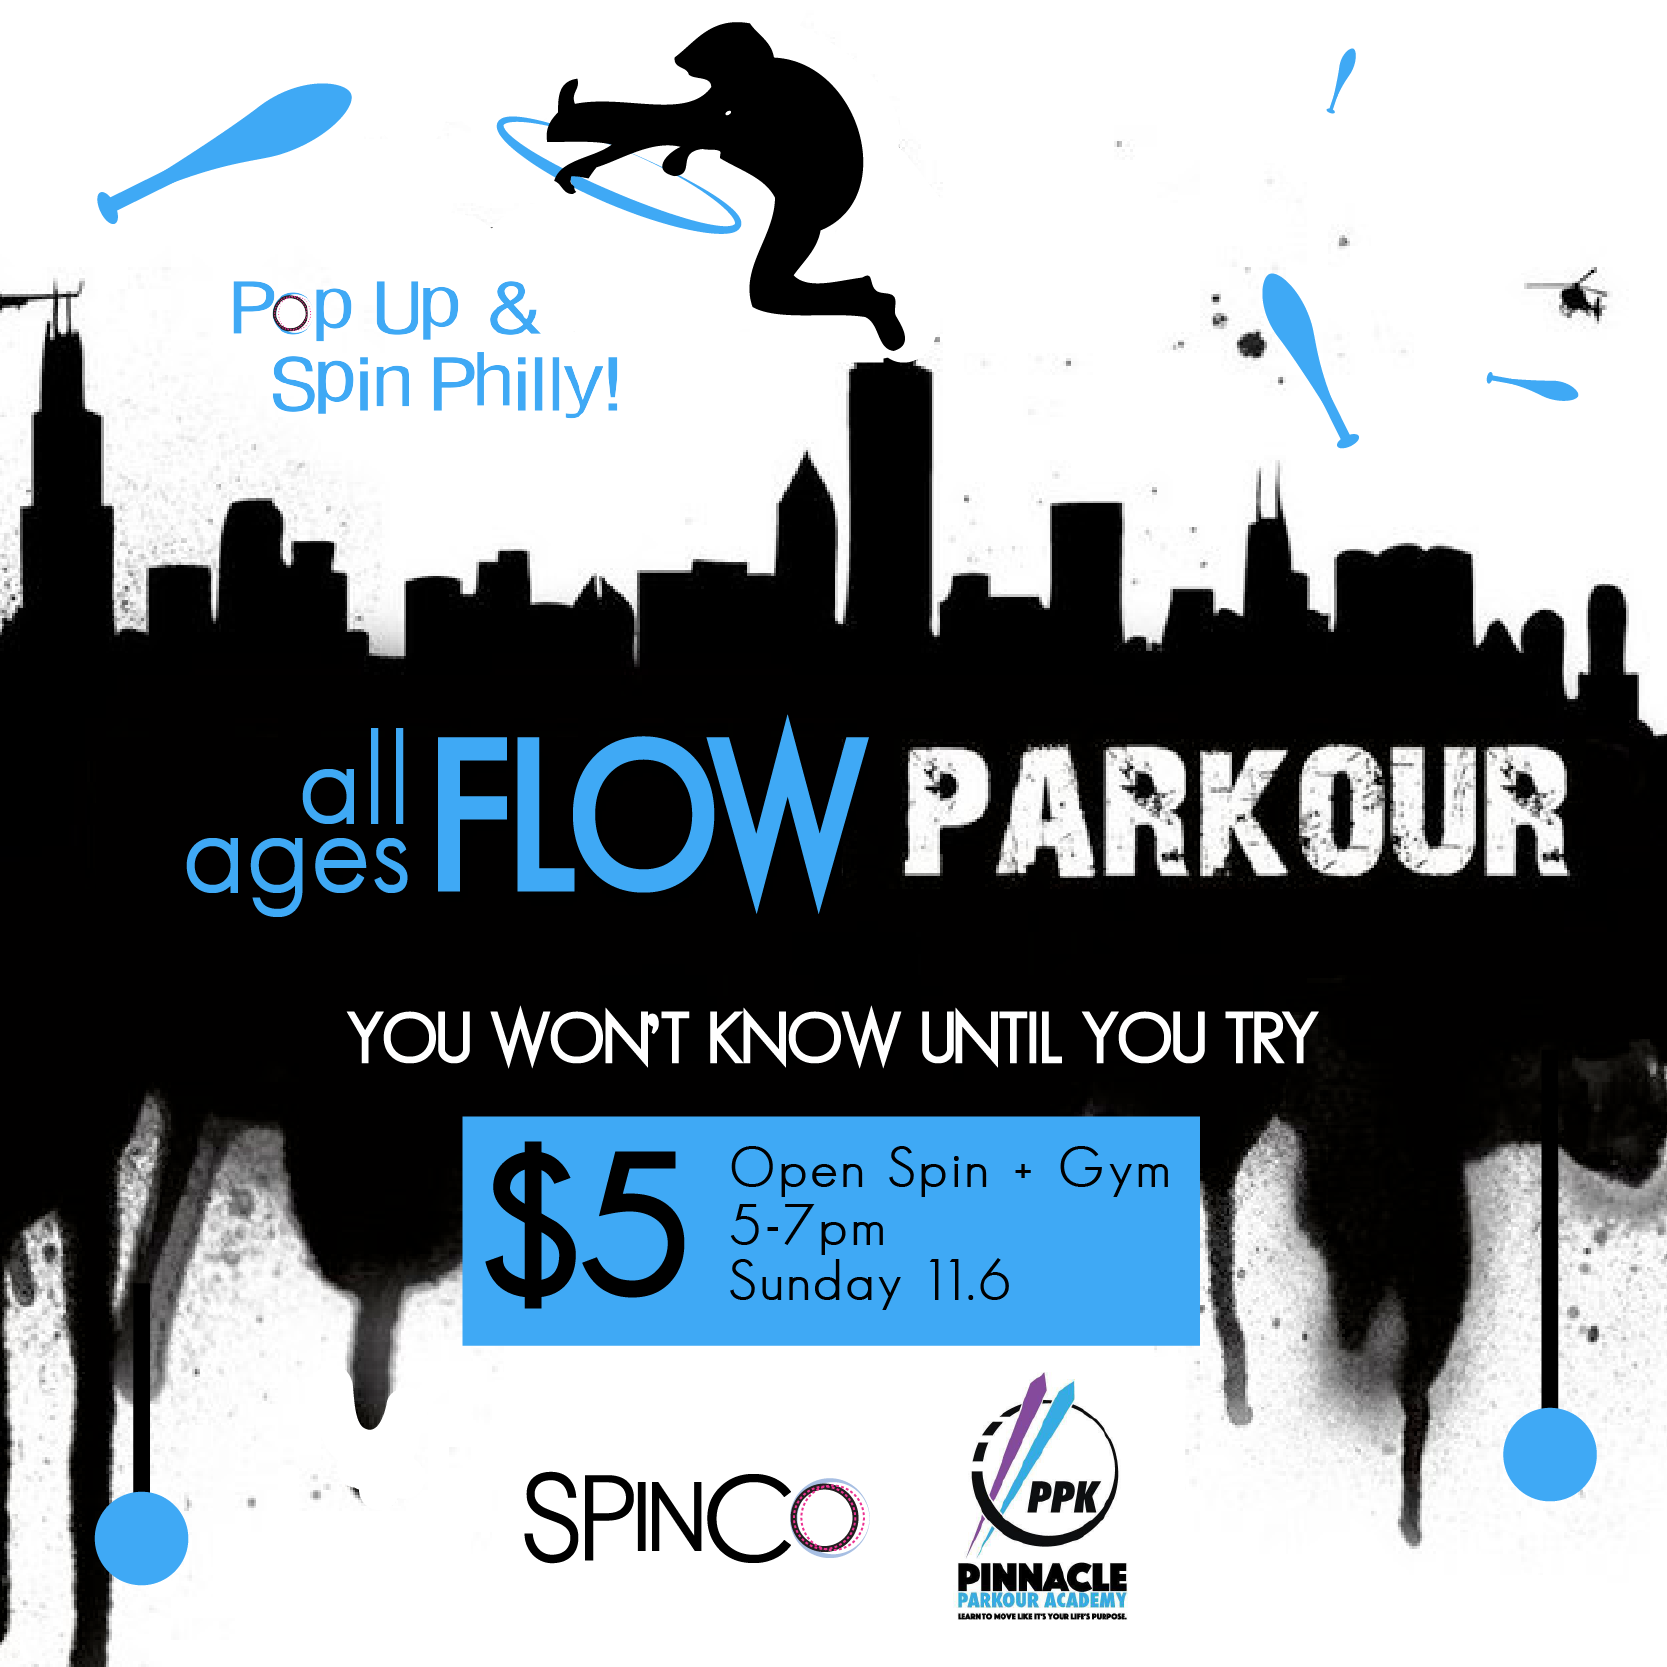 Flow Parkour Pop Up And Spin Nov 2016 Ig Post 03